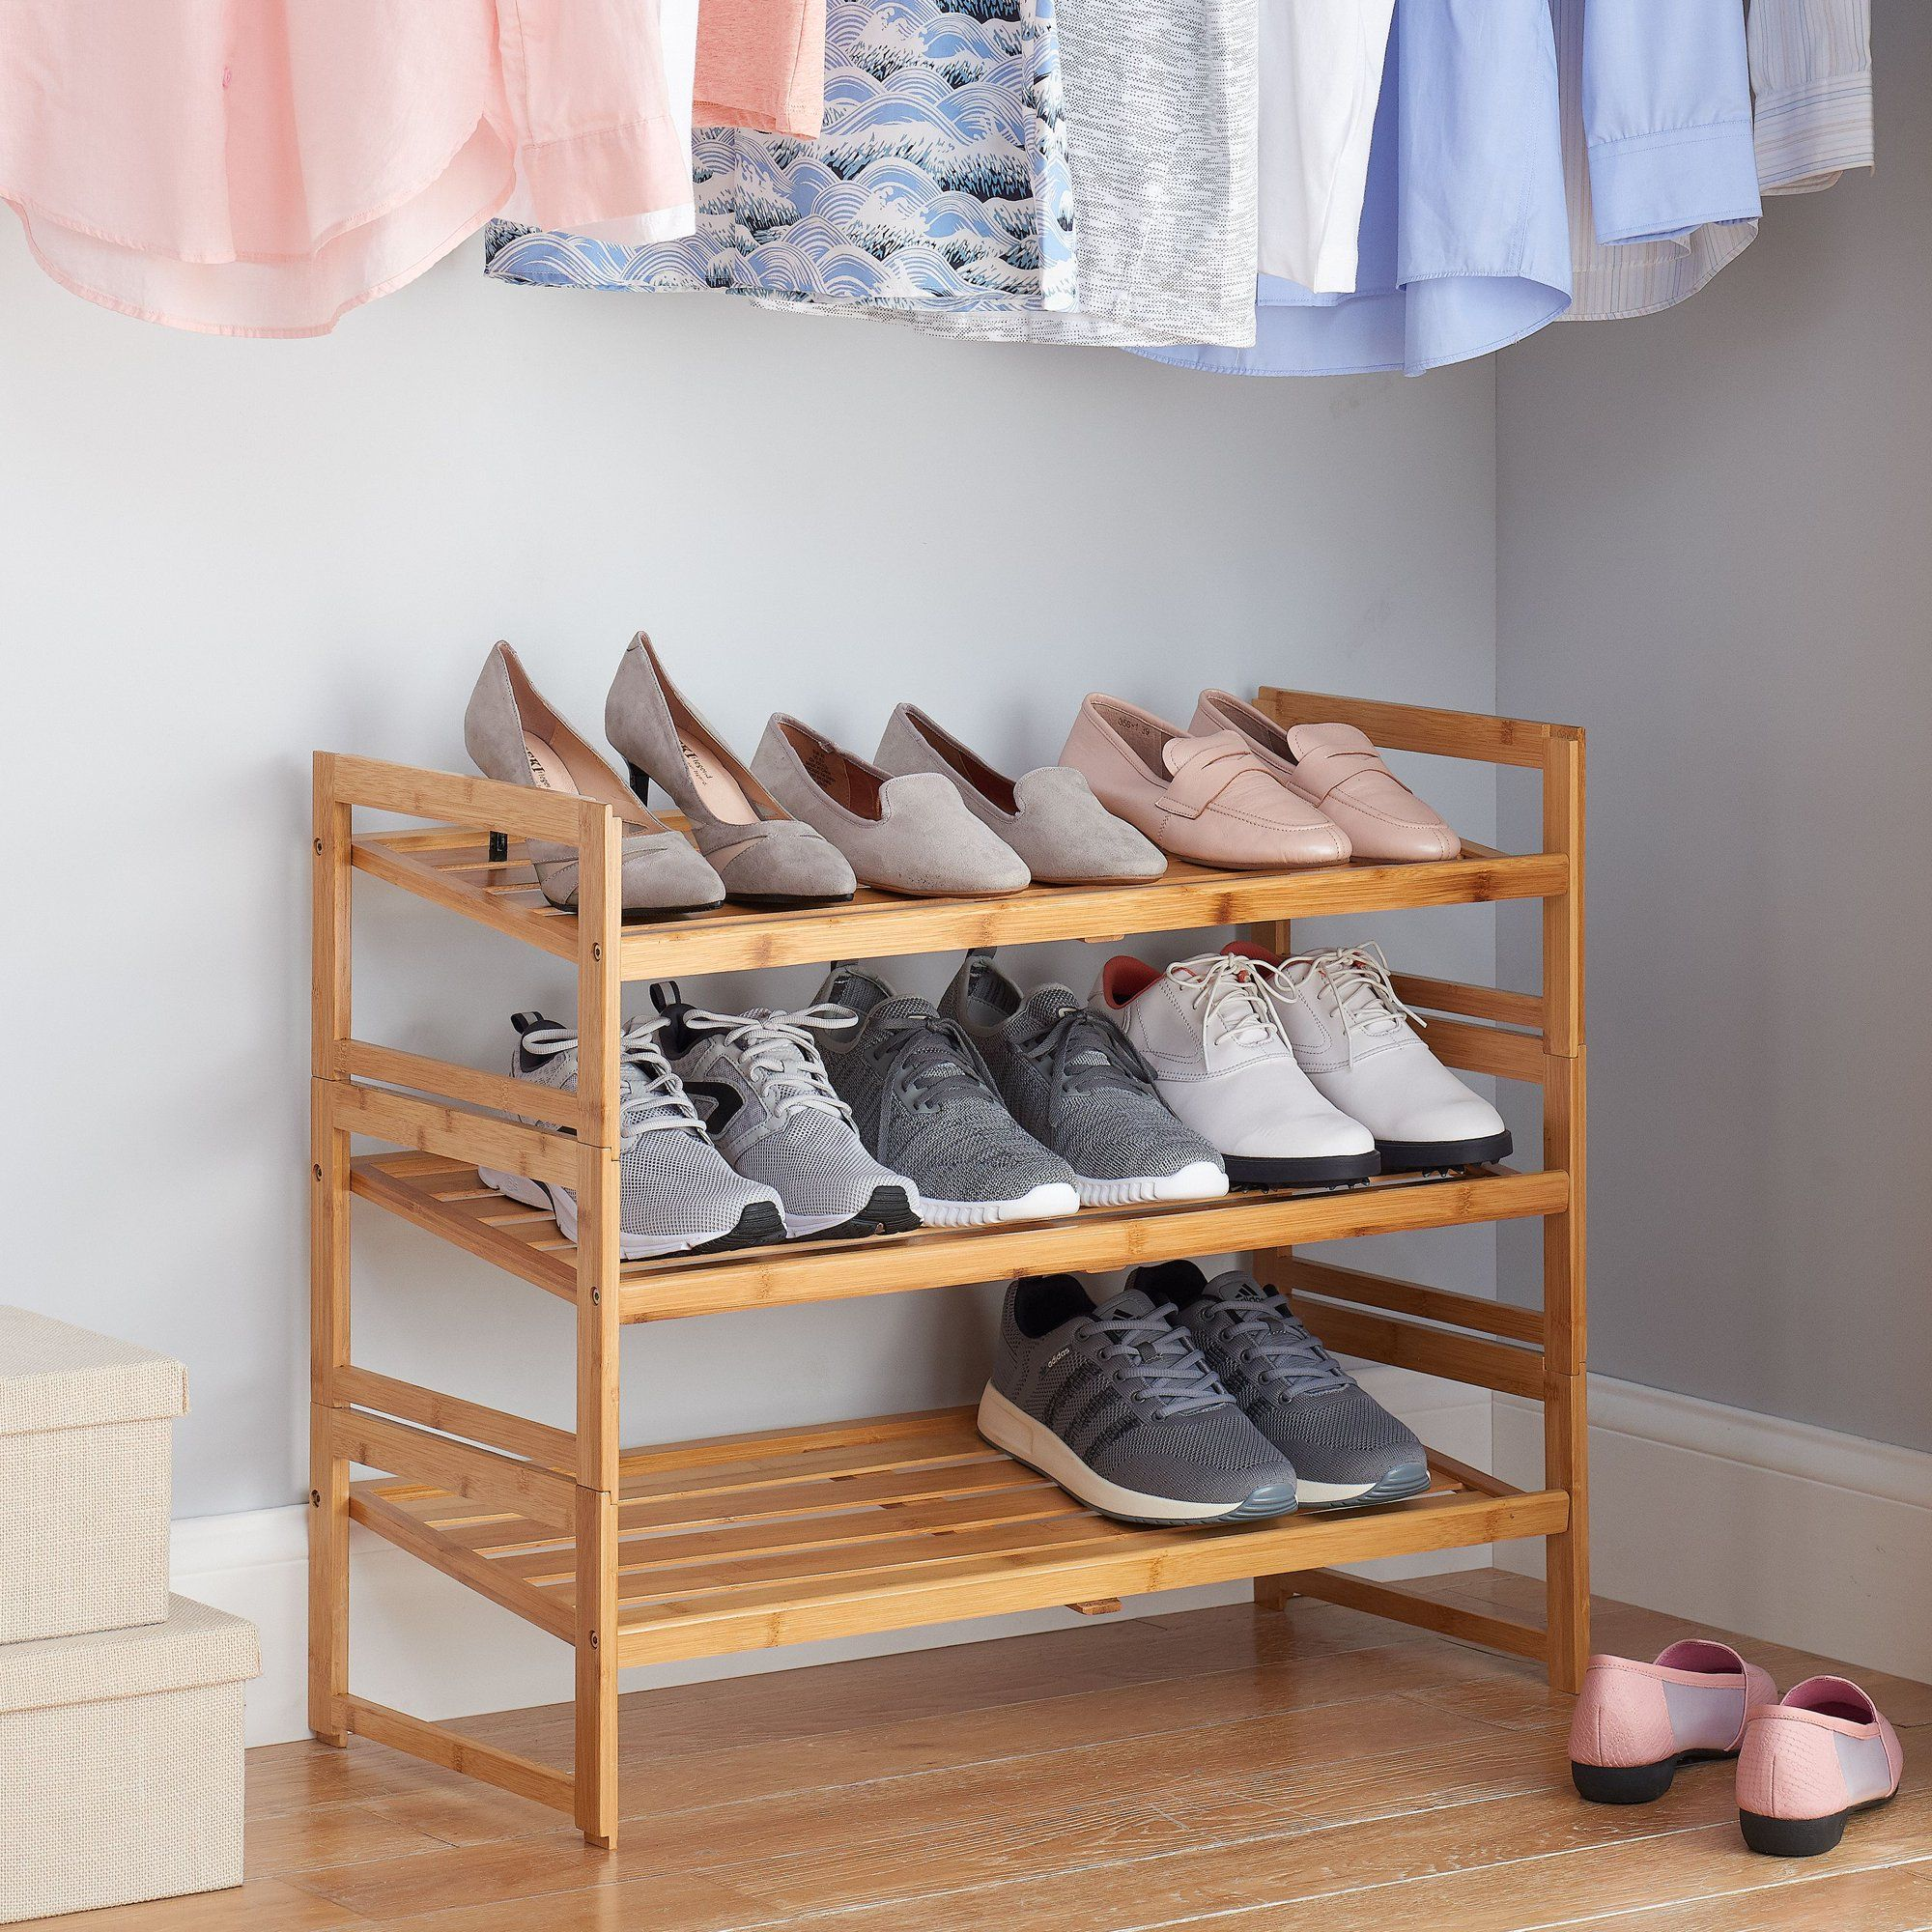 c8c31c93309deb3faf7431802e11fa17 - Better Homes And Gardens 2 Tier Stackable Shoe Rack